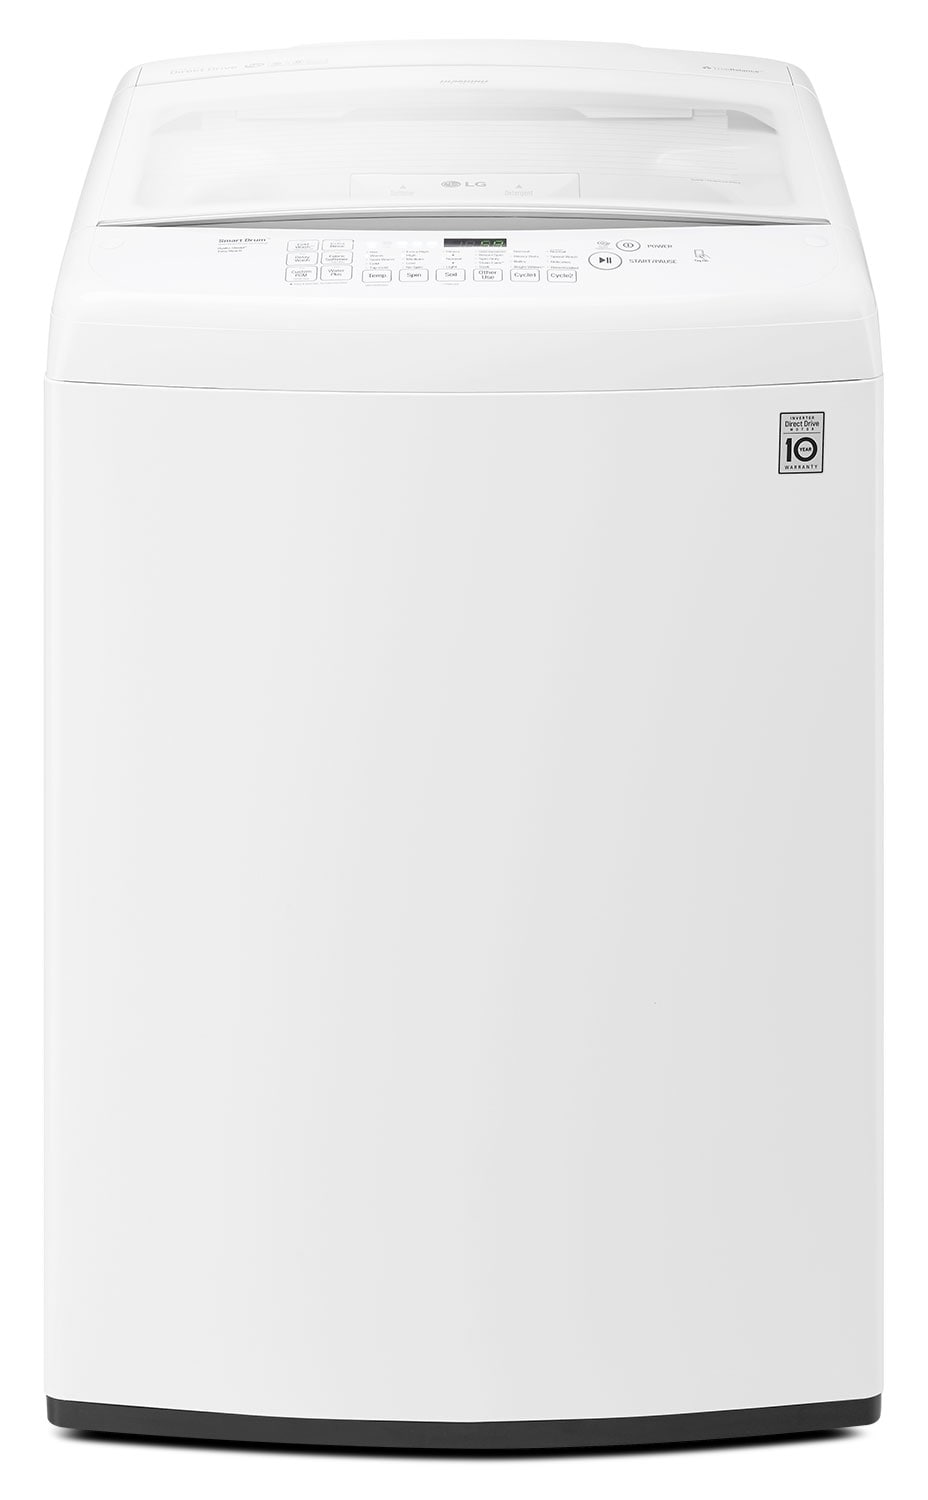 LG Appliances White Top-Load Electric Washer (5.2 Cu. Ft. IEC) - WT1501CW